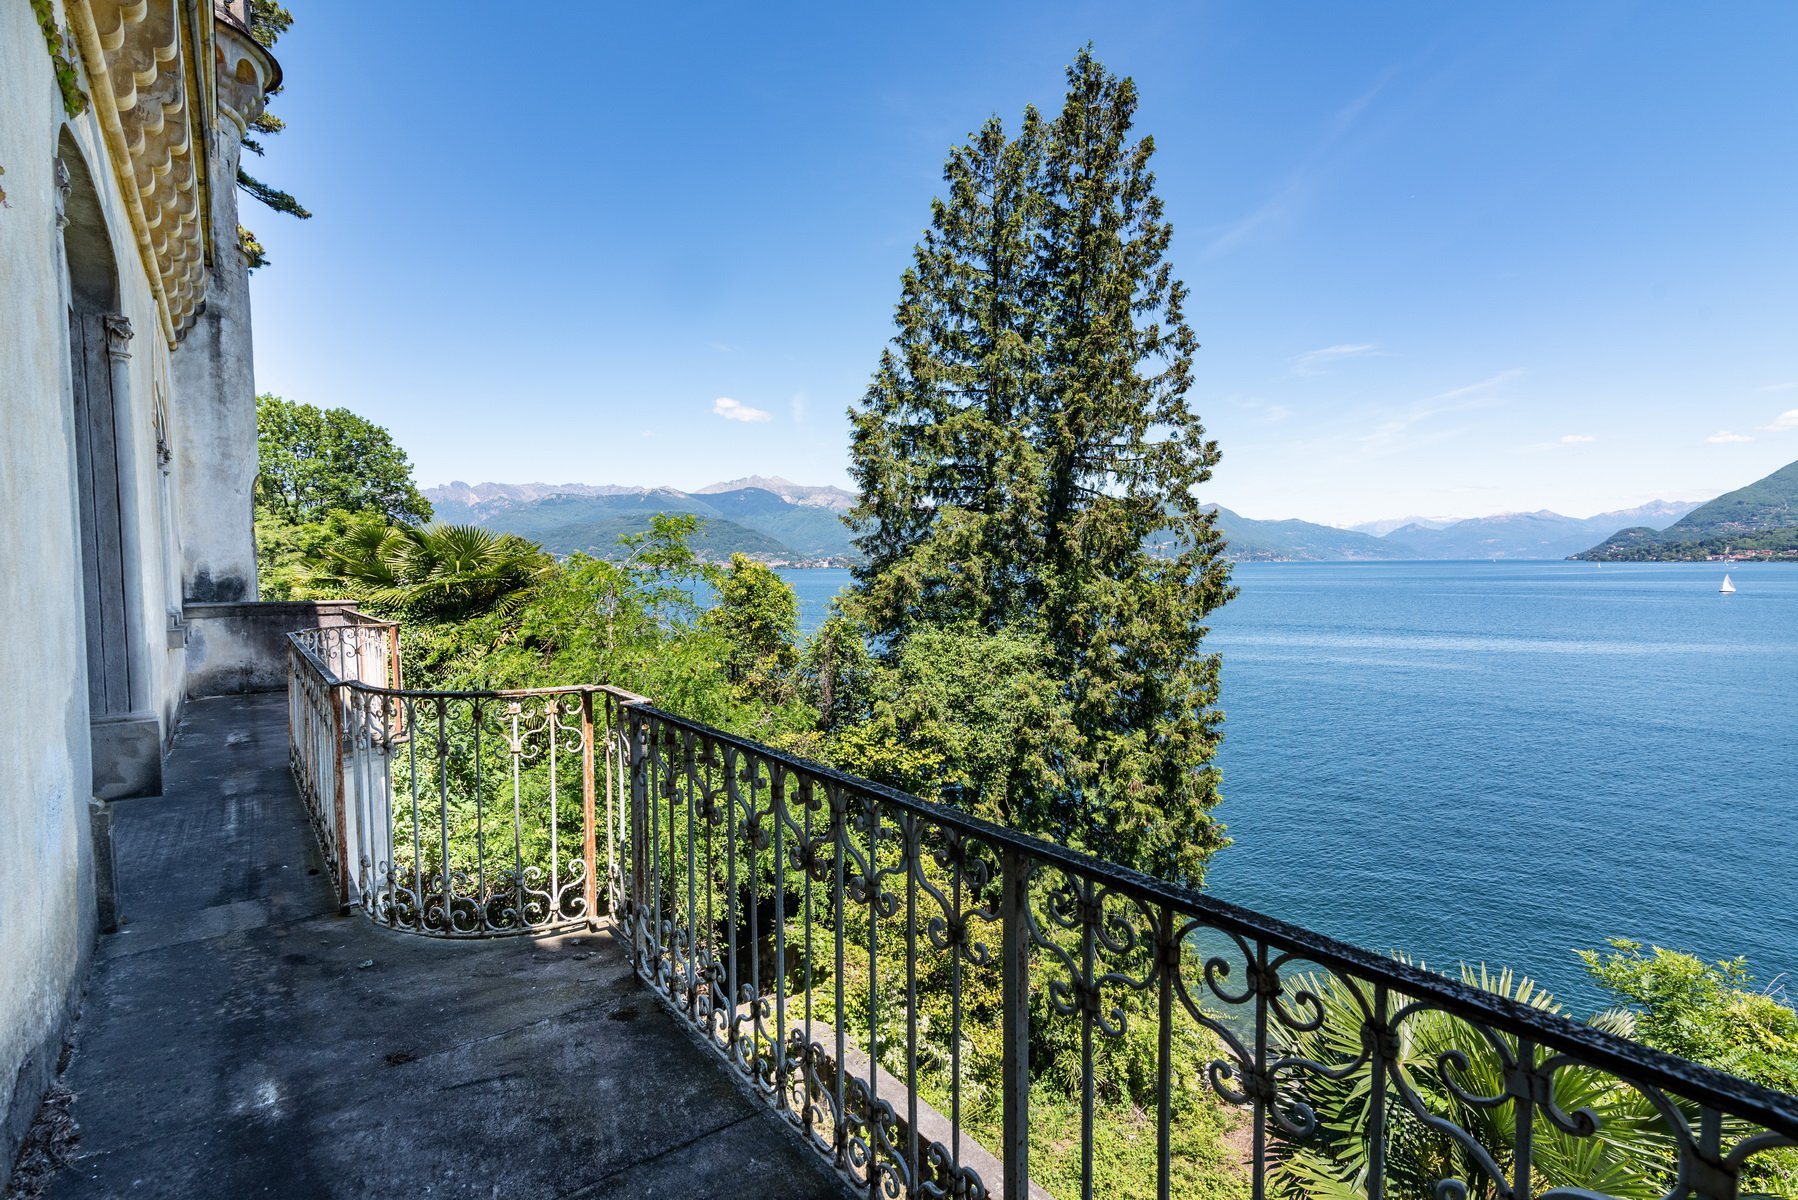 Castle for sale in Stresa on Lake Maggiore - lake view castle